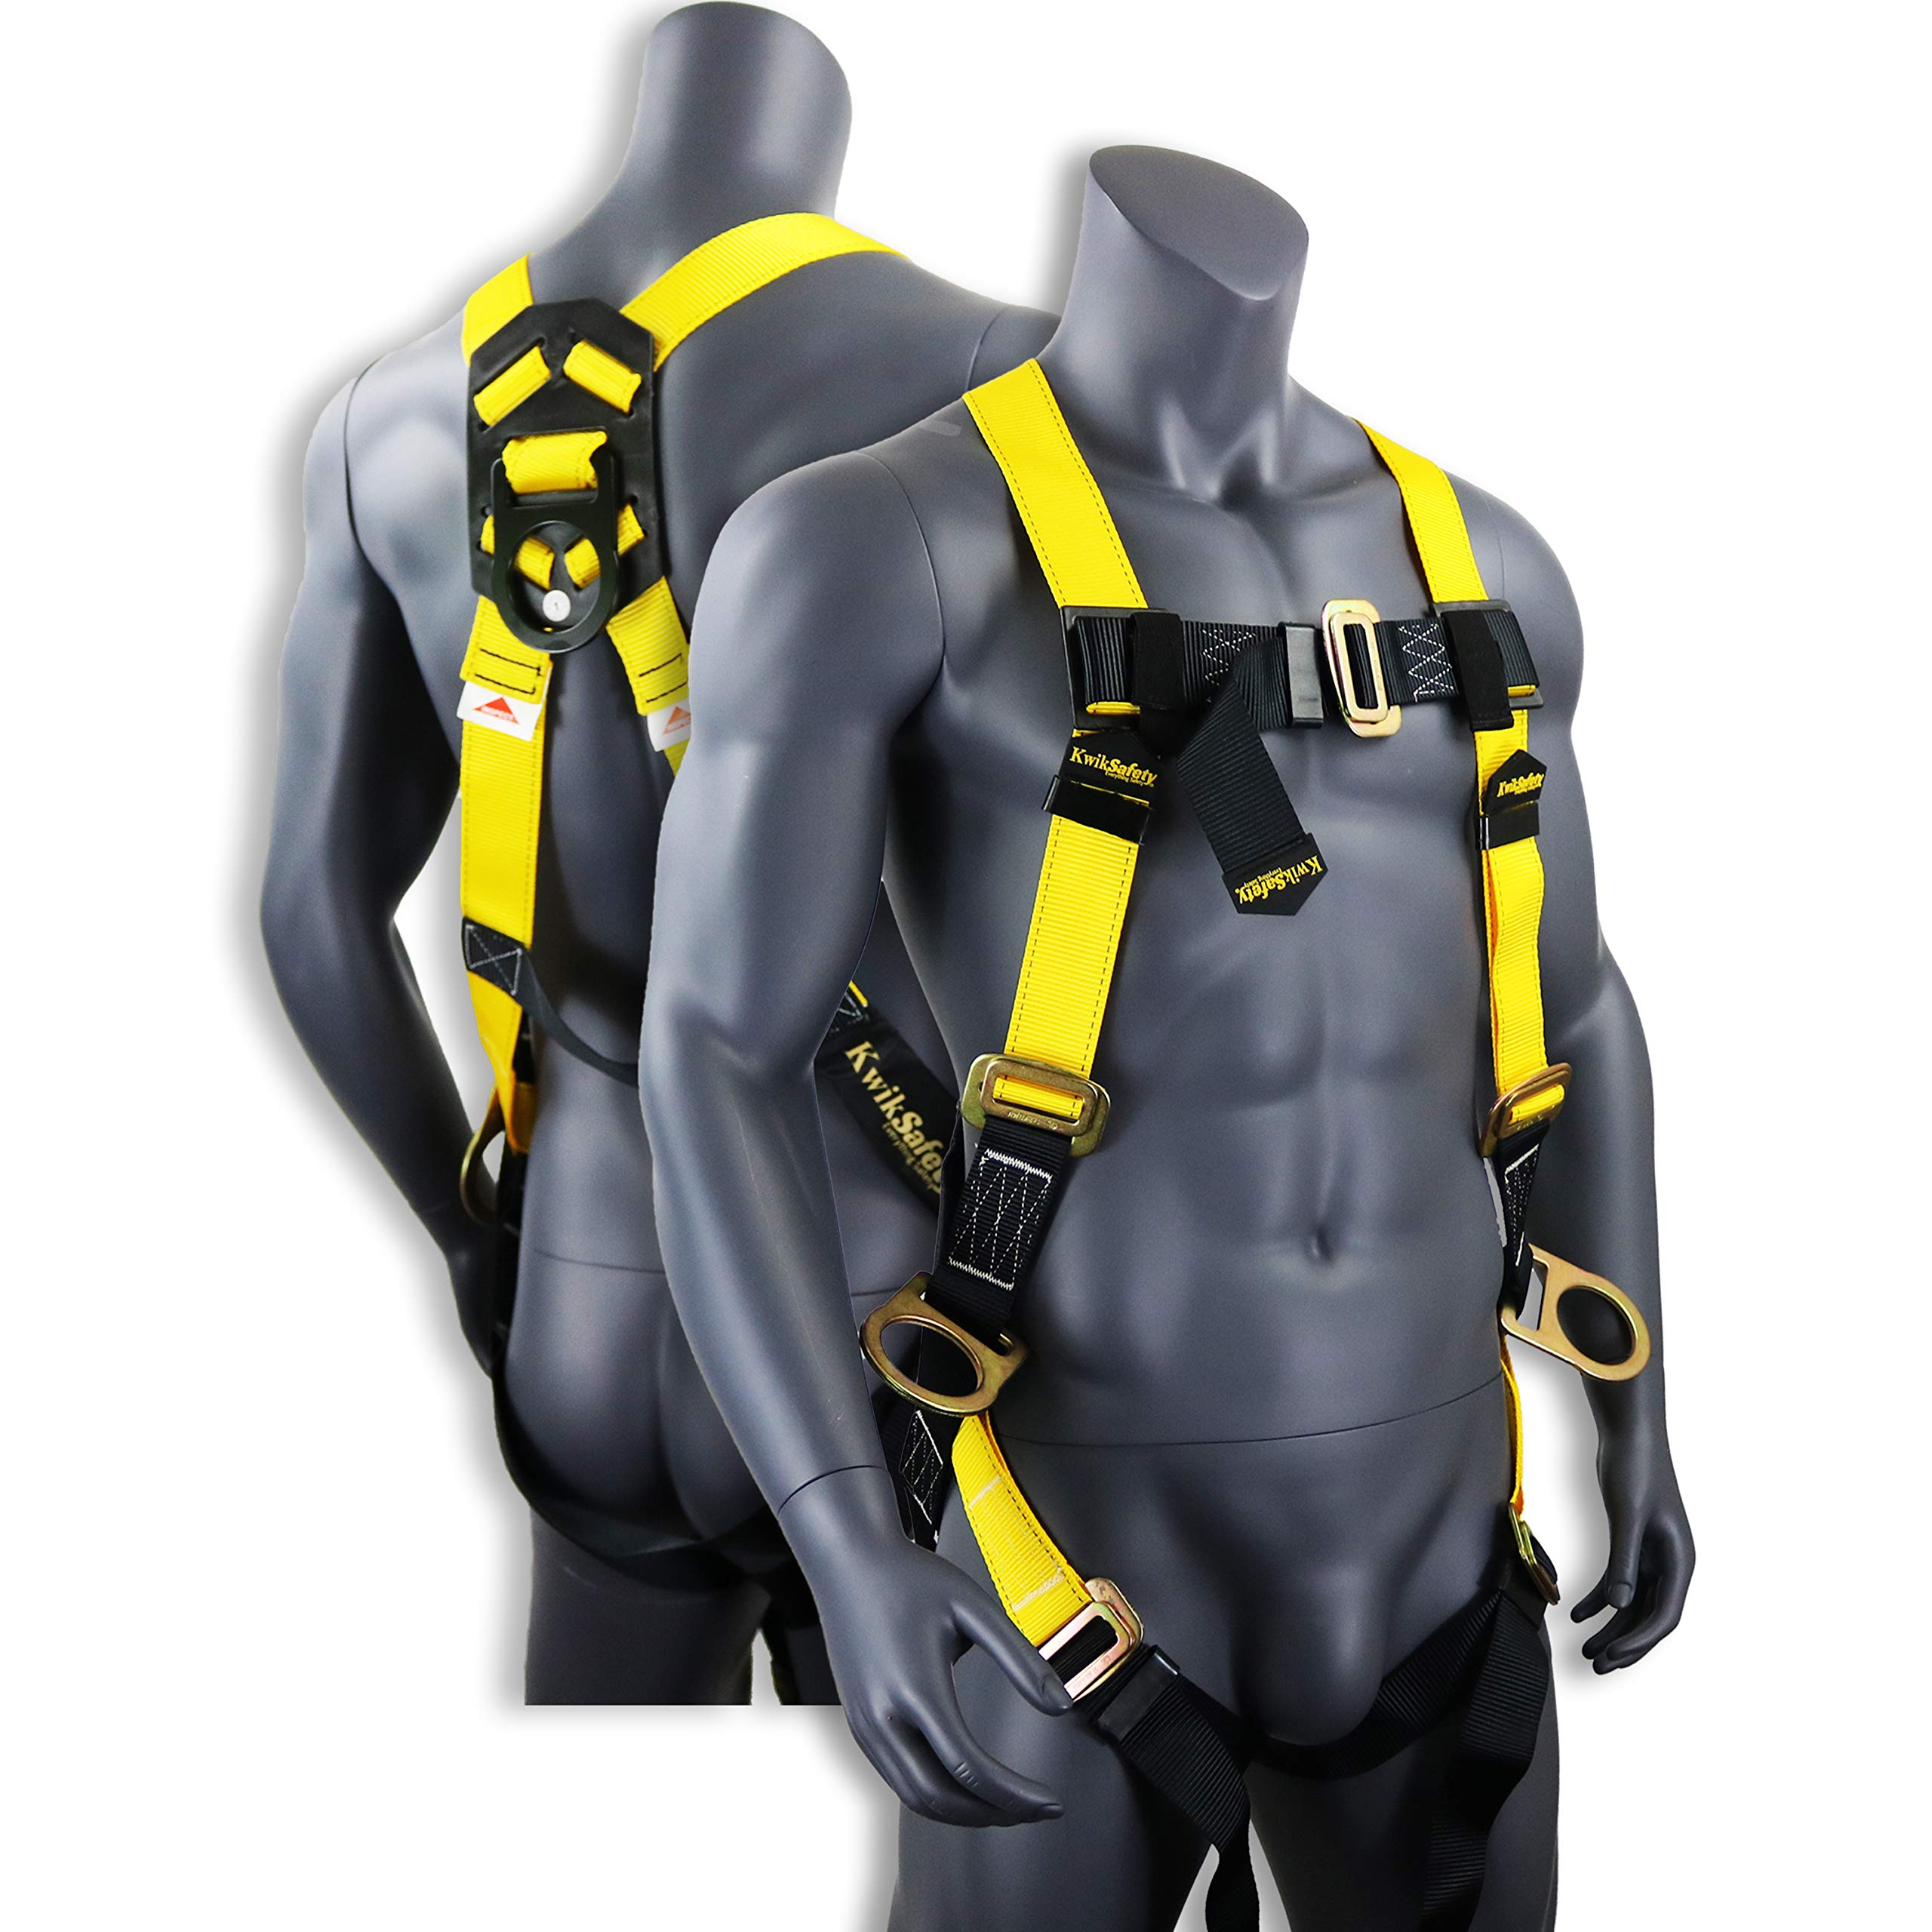 KwikSafety (Charlotte, NC) THUNDER 3D Ring Safety Harness (Pass Through Connectors) OSHA ANSI Industrial Full Body Fall Protection Personal Equipment Construction Carpenter Scaffold Contractor by KwikSafety